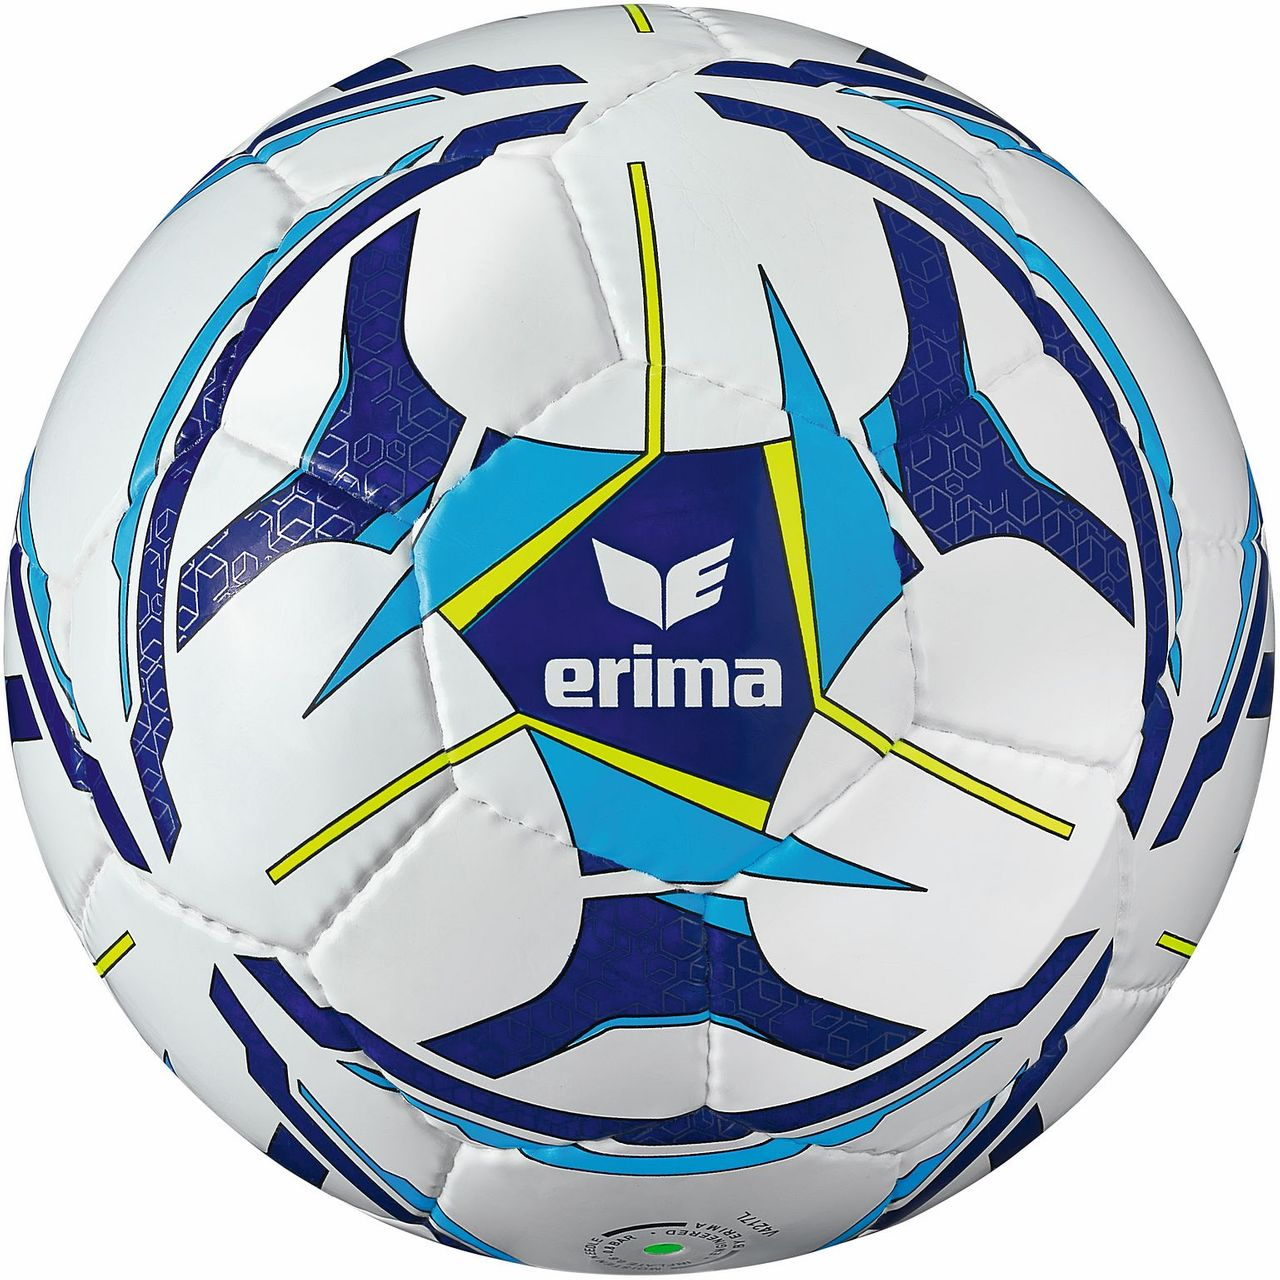 erima Trainingsball Senzor Allround Training